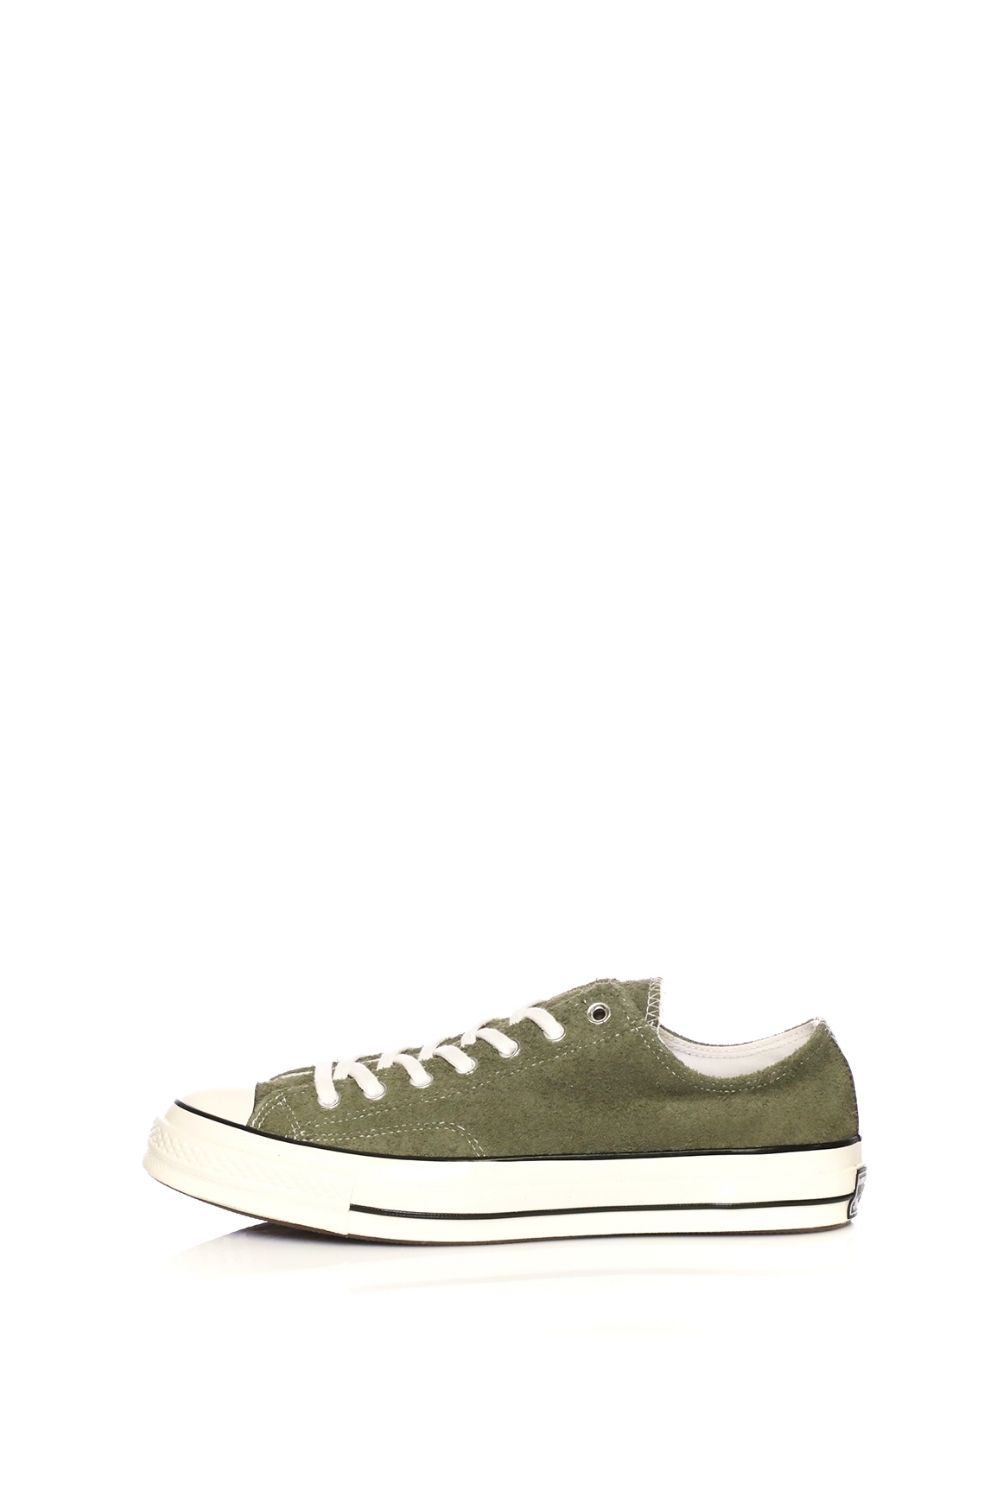 CONVERSE – Unisex sneakers CONVERSE Chuck Taylor All Star 1970s Ox χακί